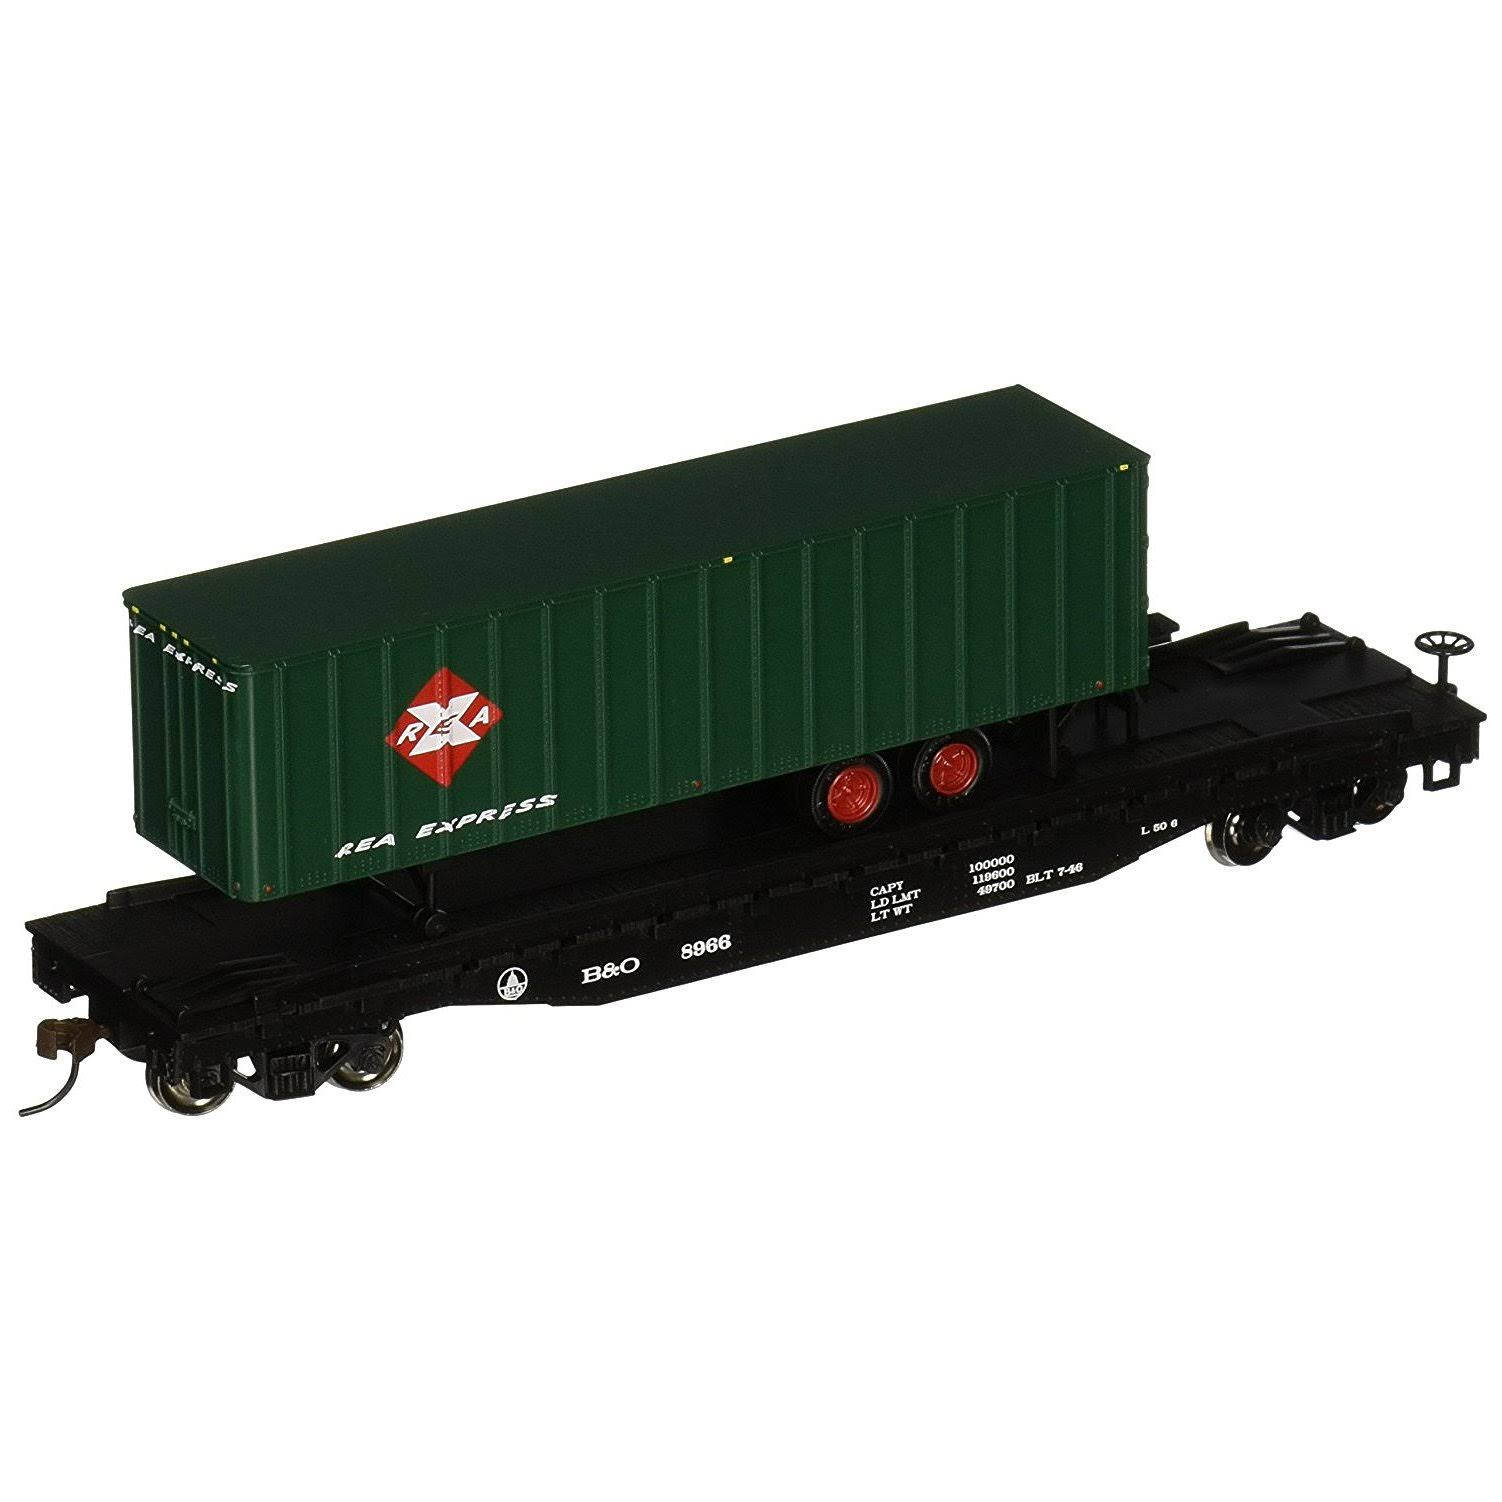 Bachmann 16702 HO Scale Train Flat Car Miniature - with Piggyback Trailer B and O Railway Express Flat